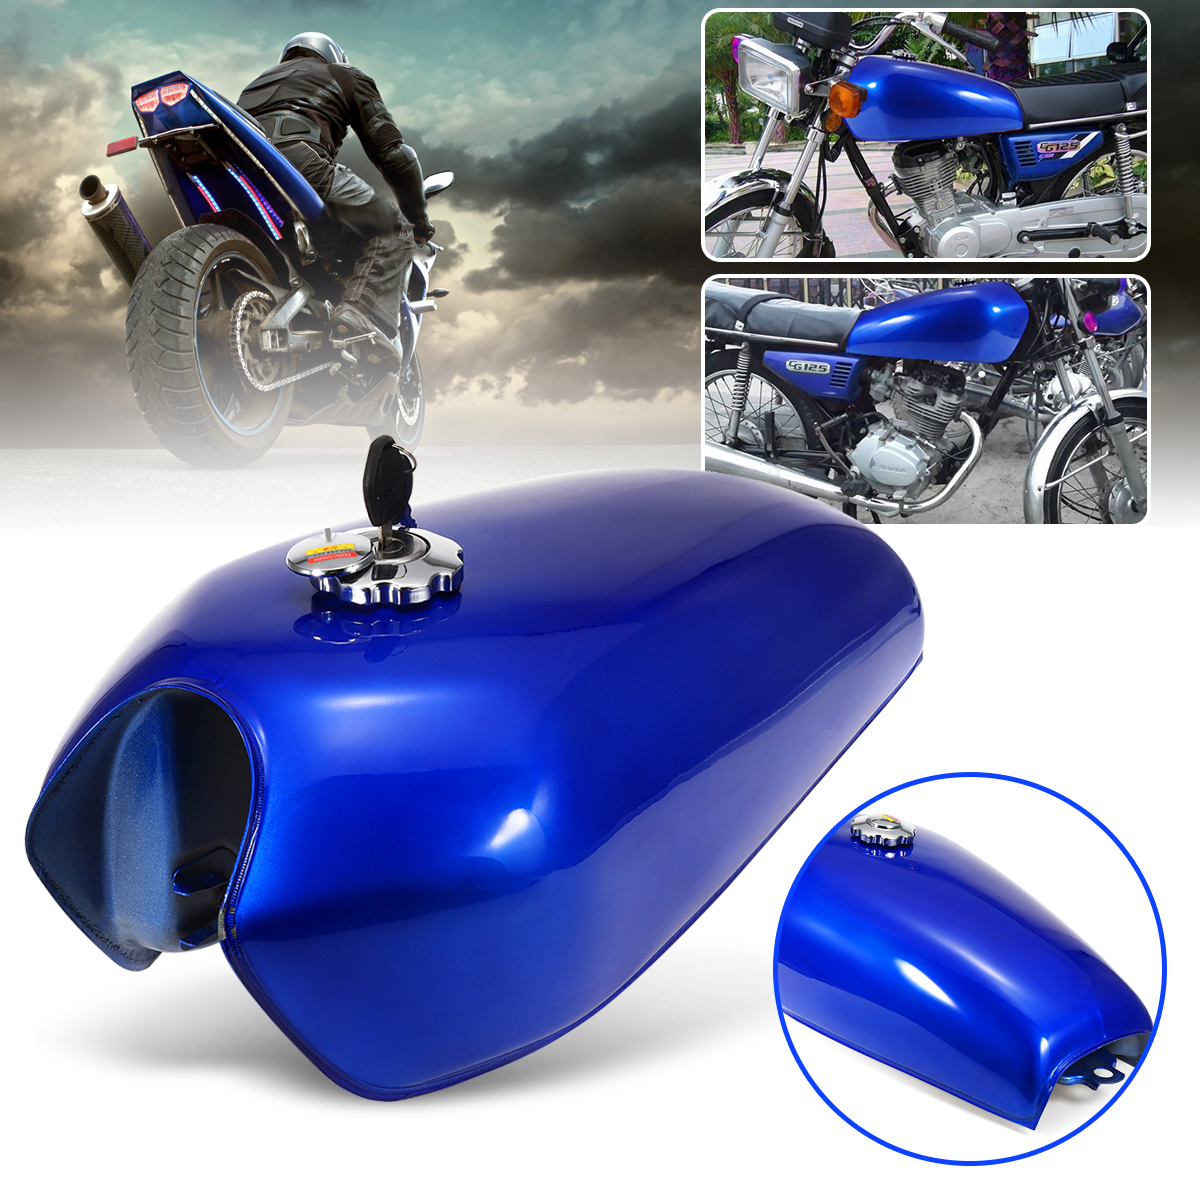 B4 Peda Cafe Racer Retro Fuel Tank Universal Motorcycle Vintage Suzuki Gn250 Kit 9l Gas With Thick Iron Cap Switch For Honda Cg125